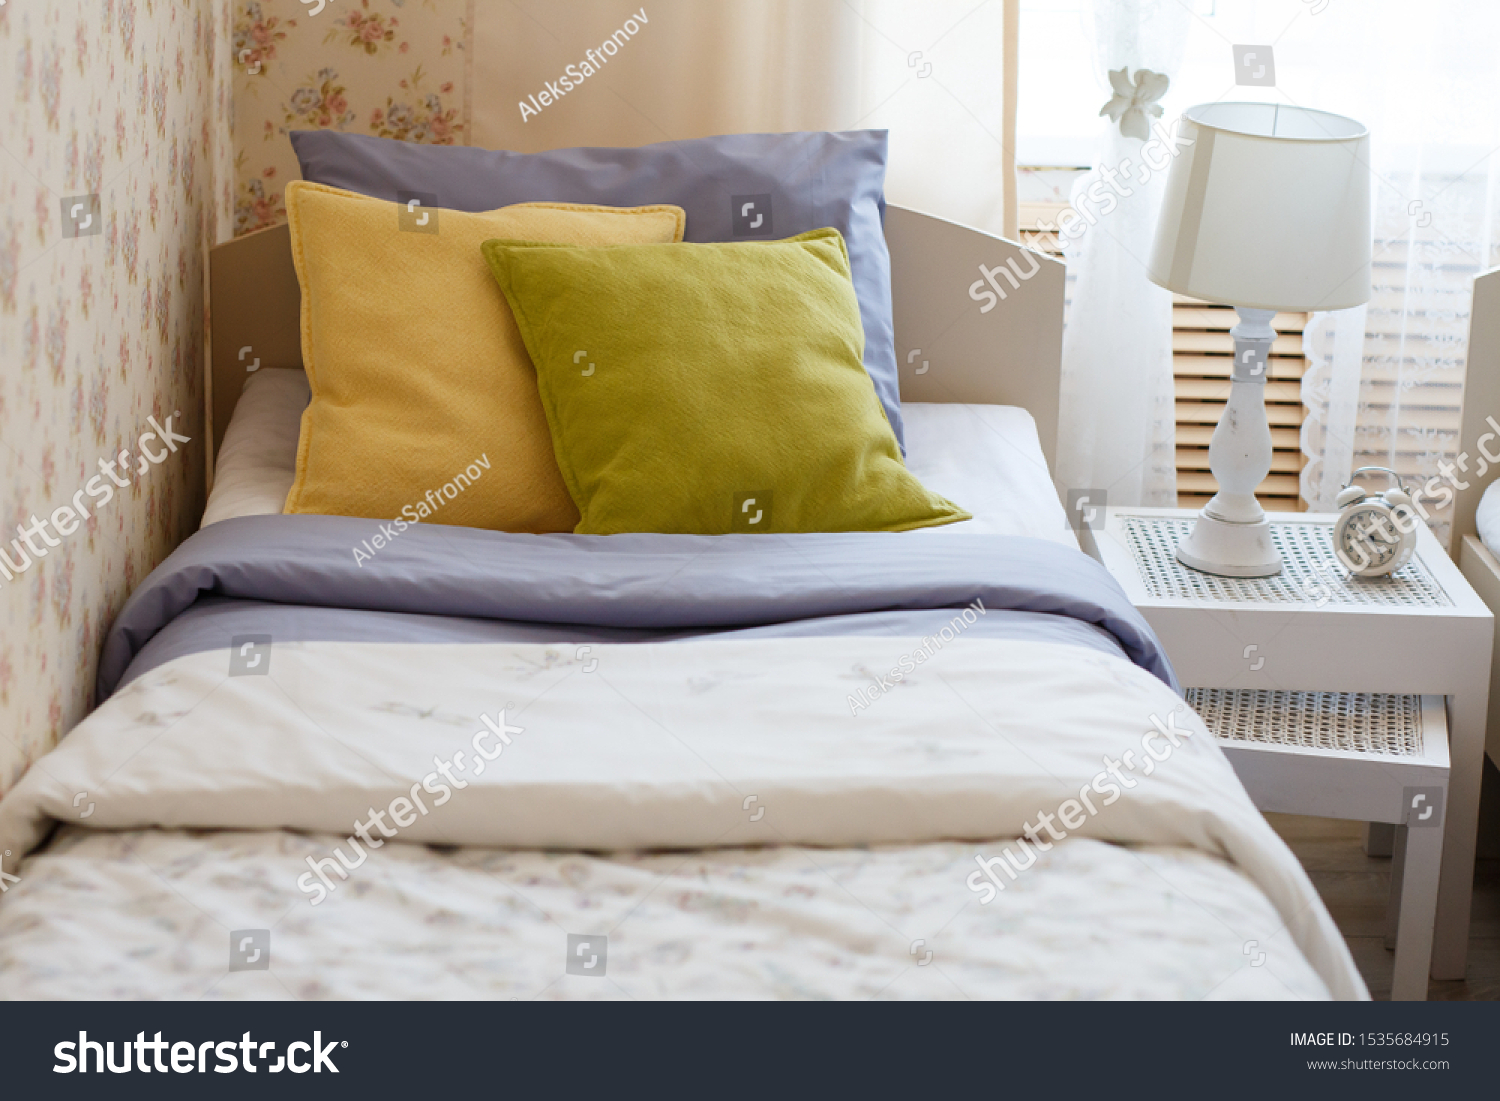 Bright Colored Pillows On Bed Stock Photo Edit Now 1535684915